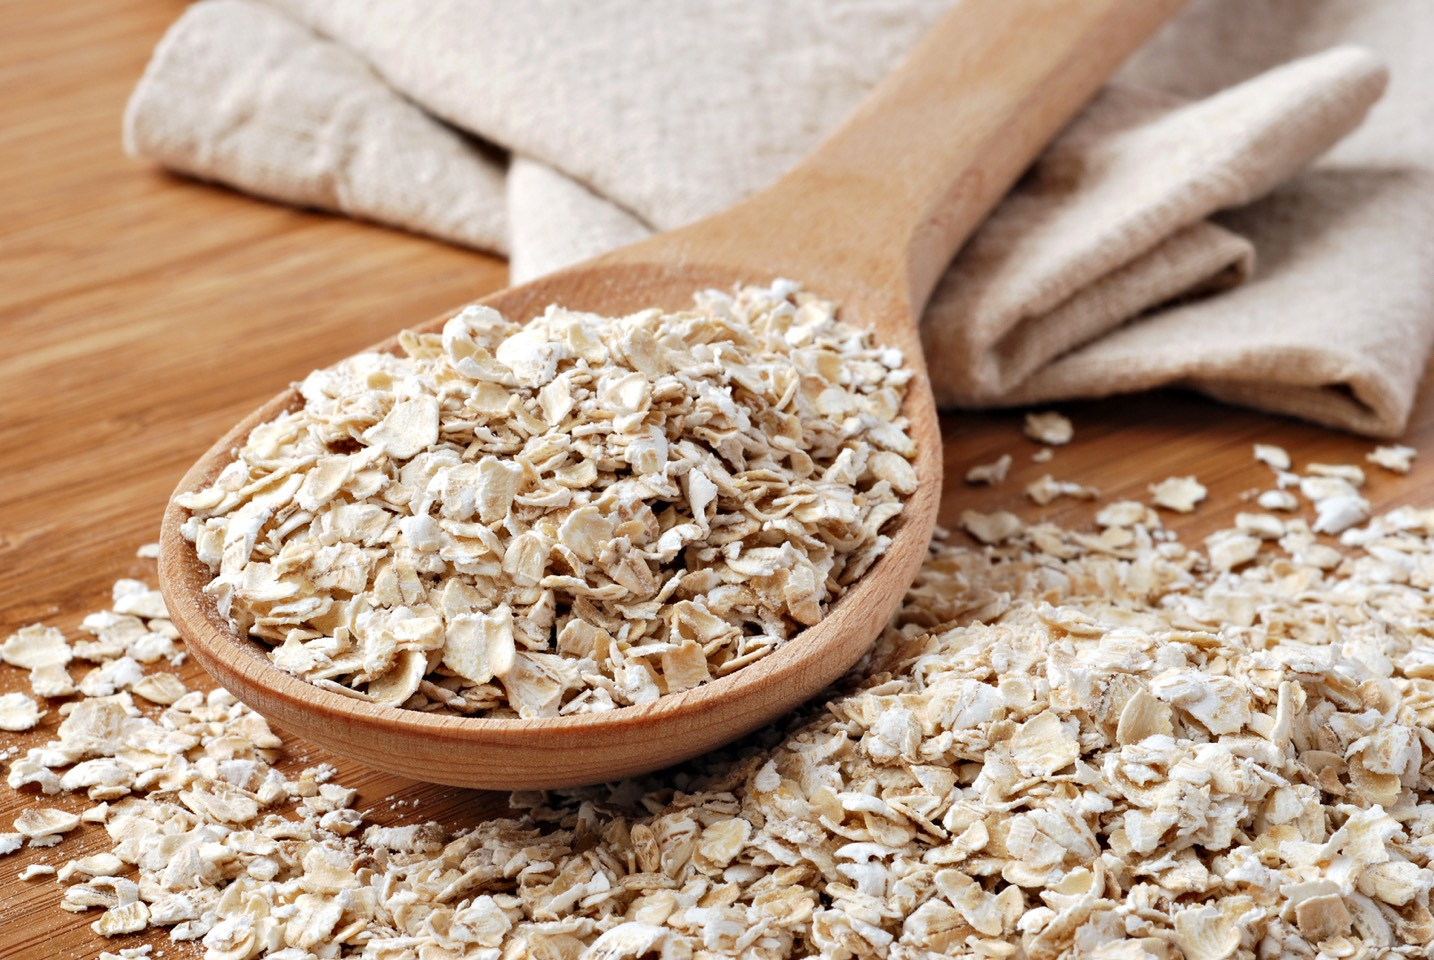 1 tablespoon oats